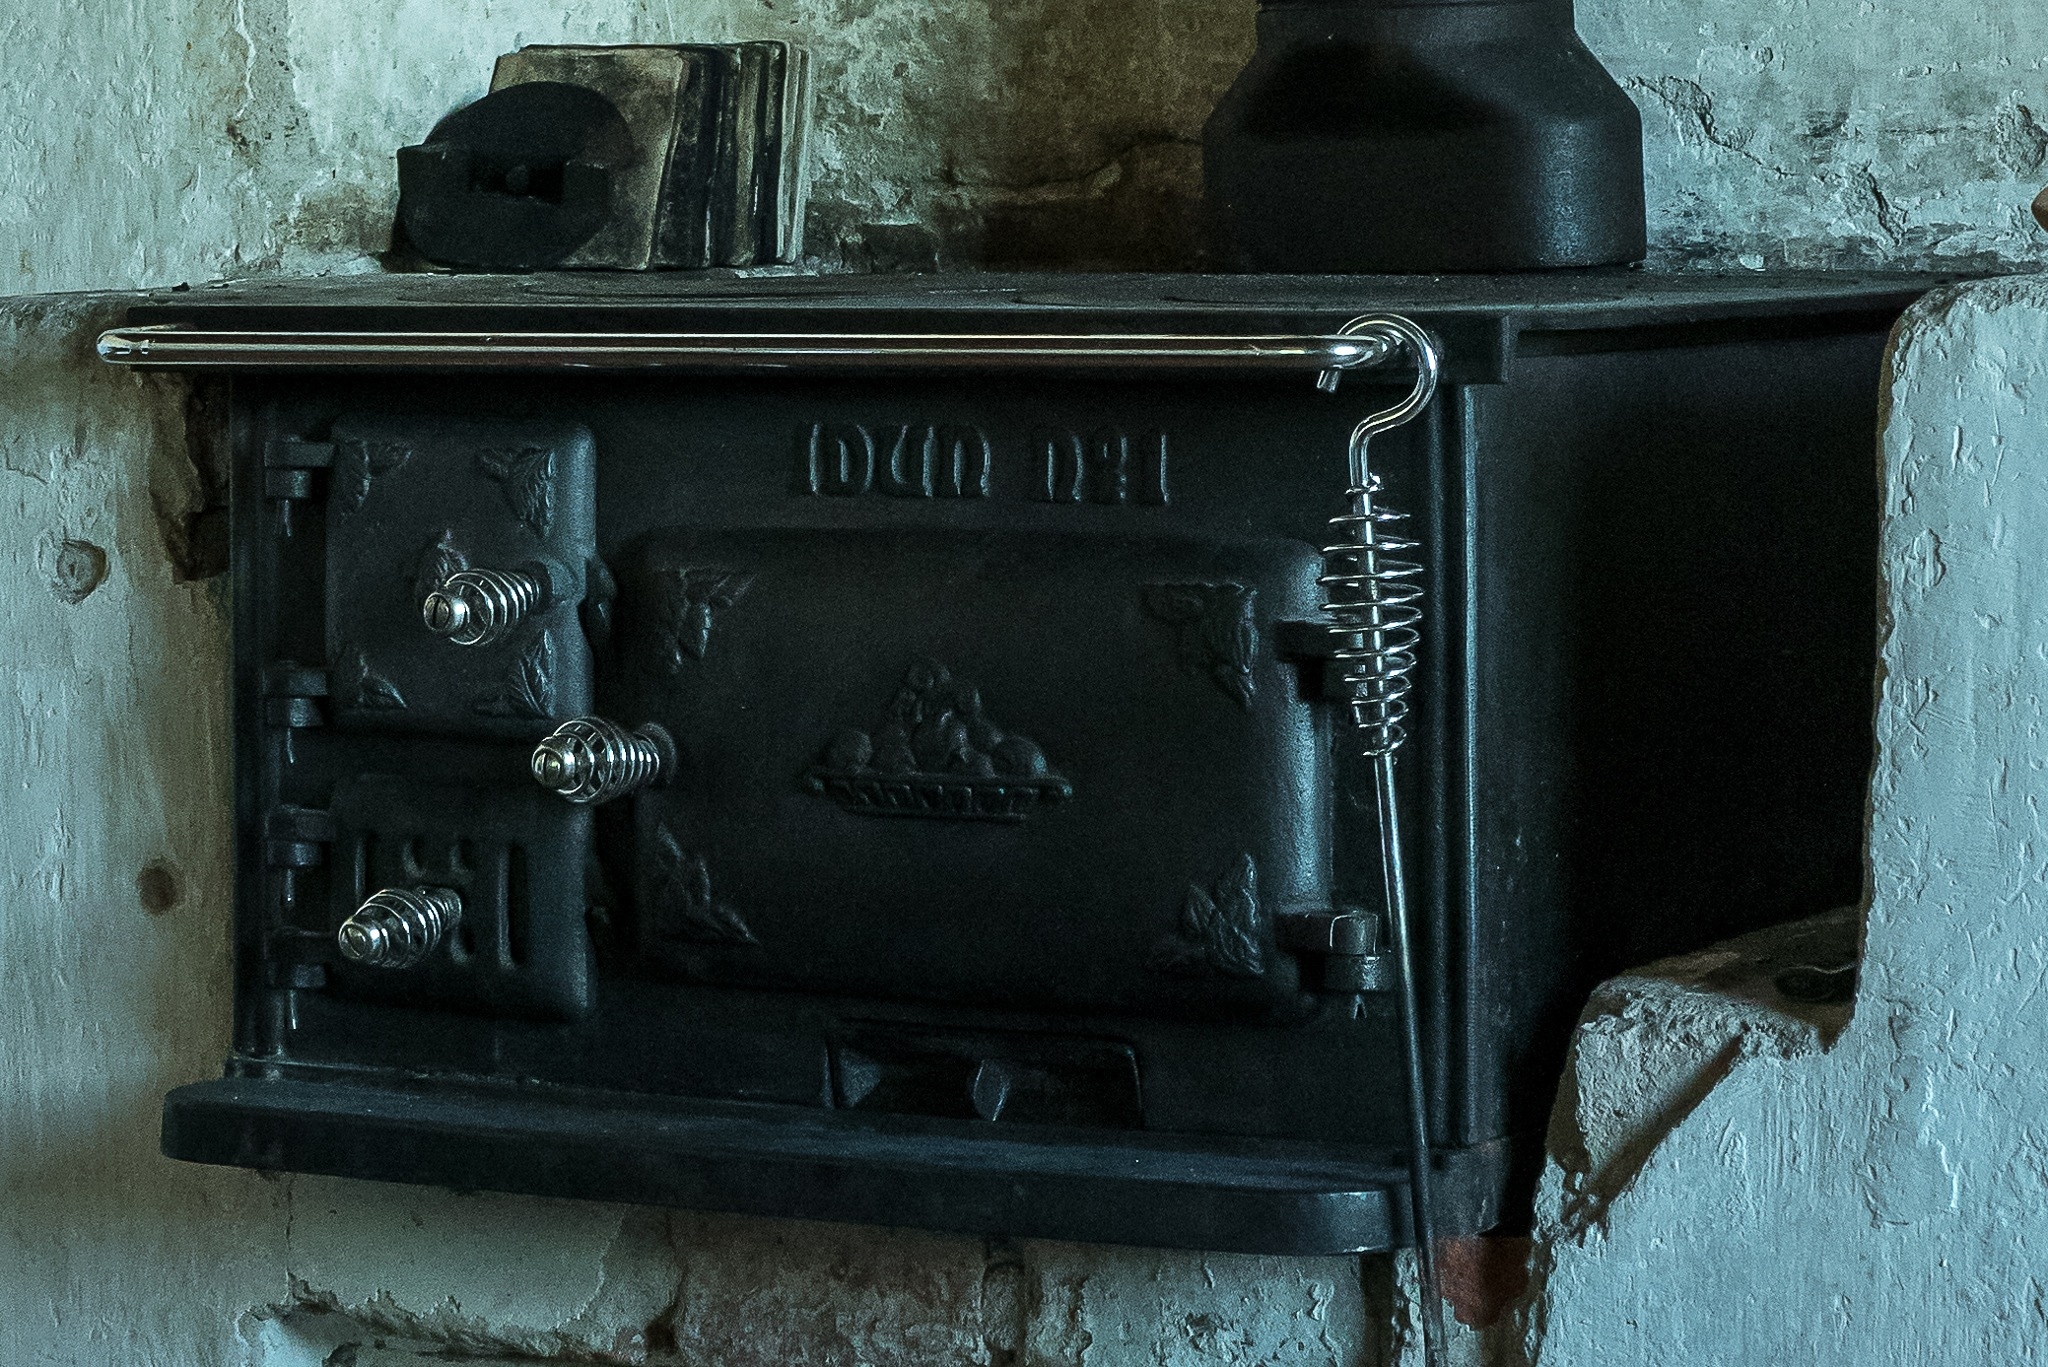 Old oven by Mats Bodlund